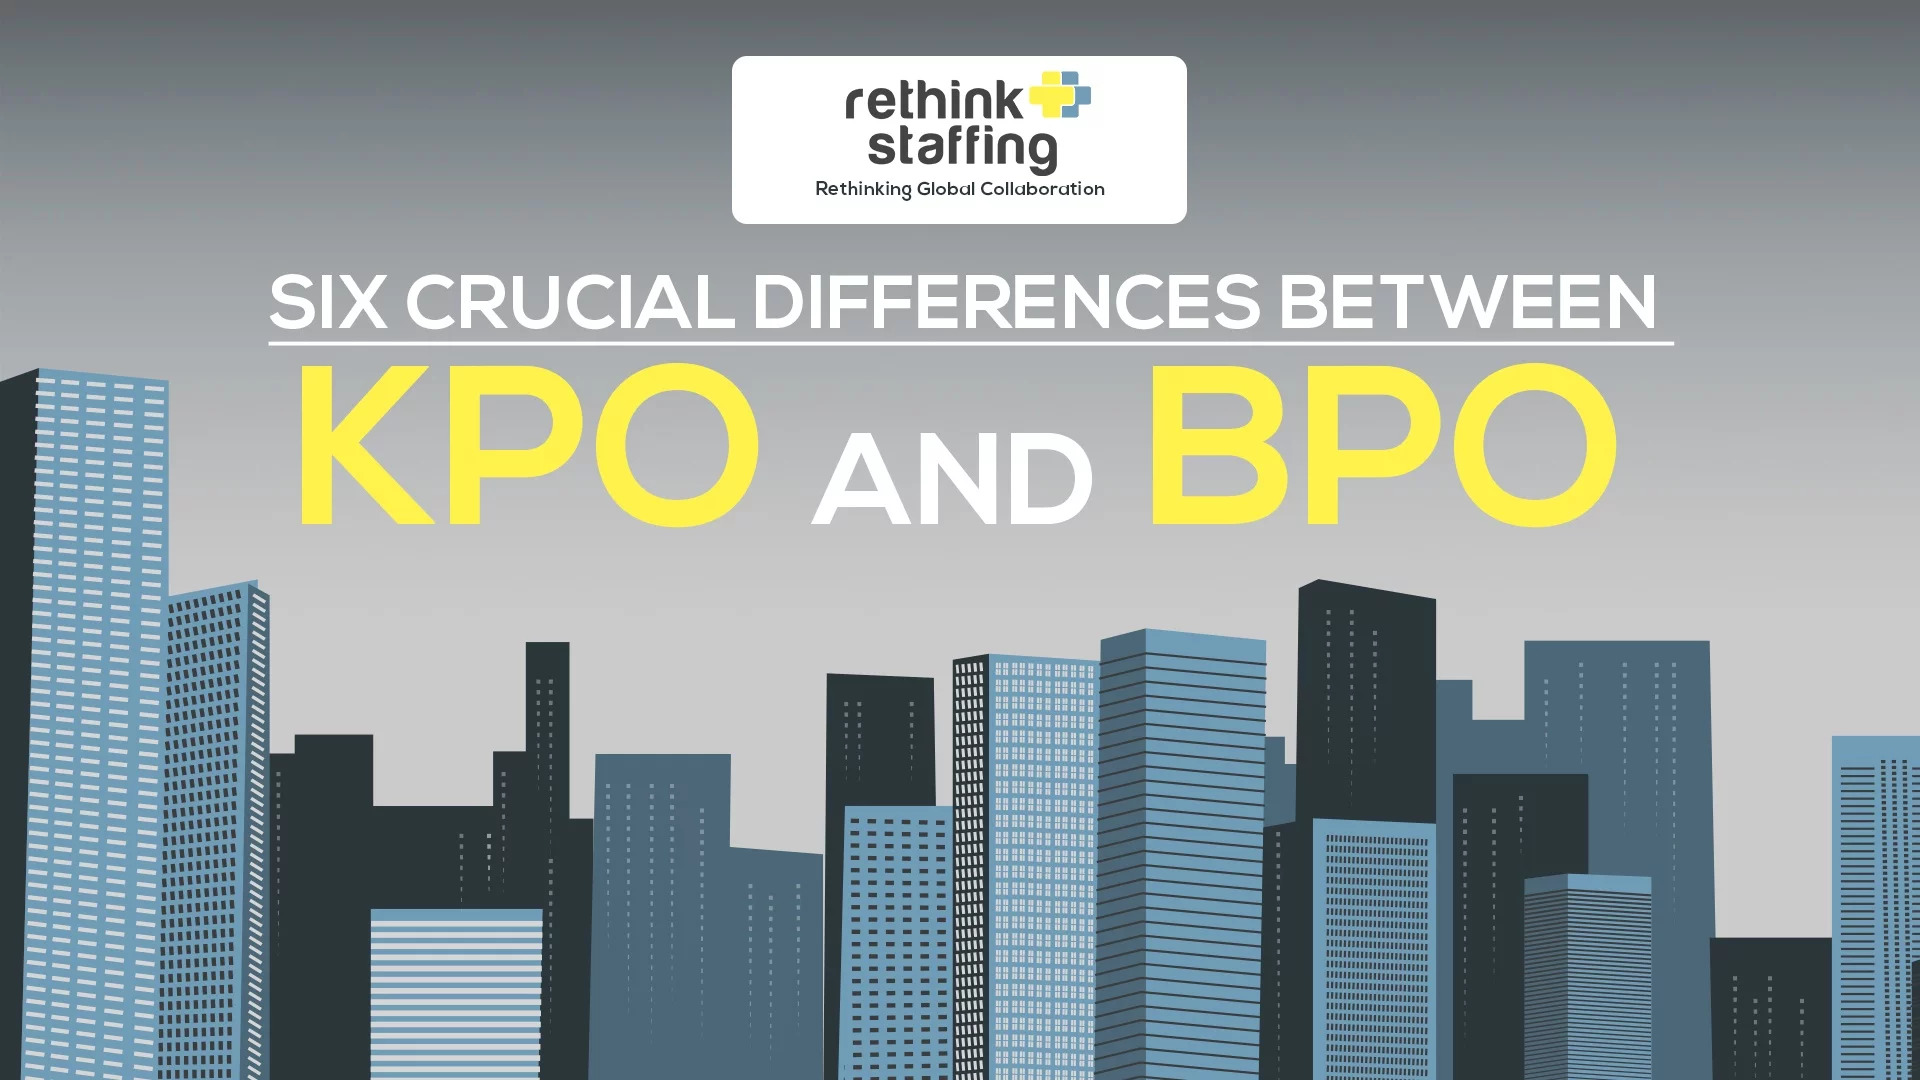 Six Crucial Differences Between KPO and BPO